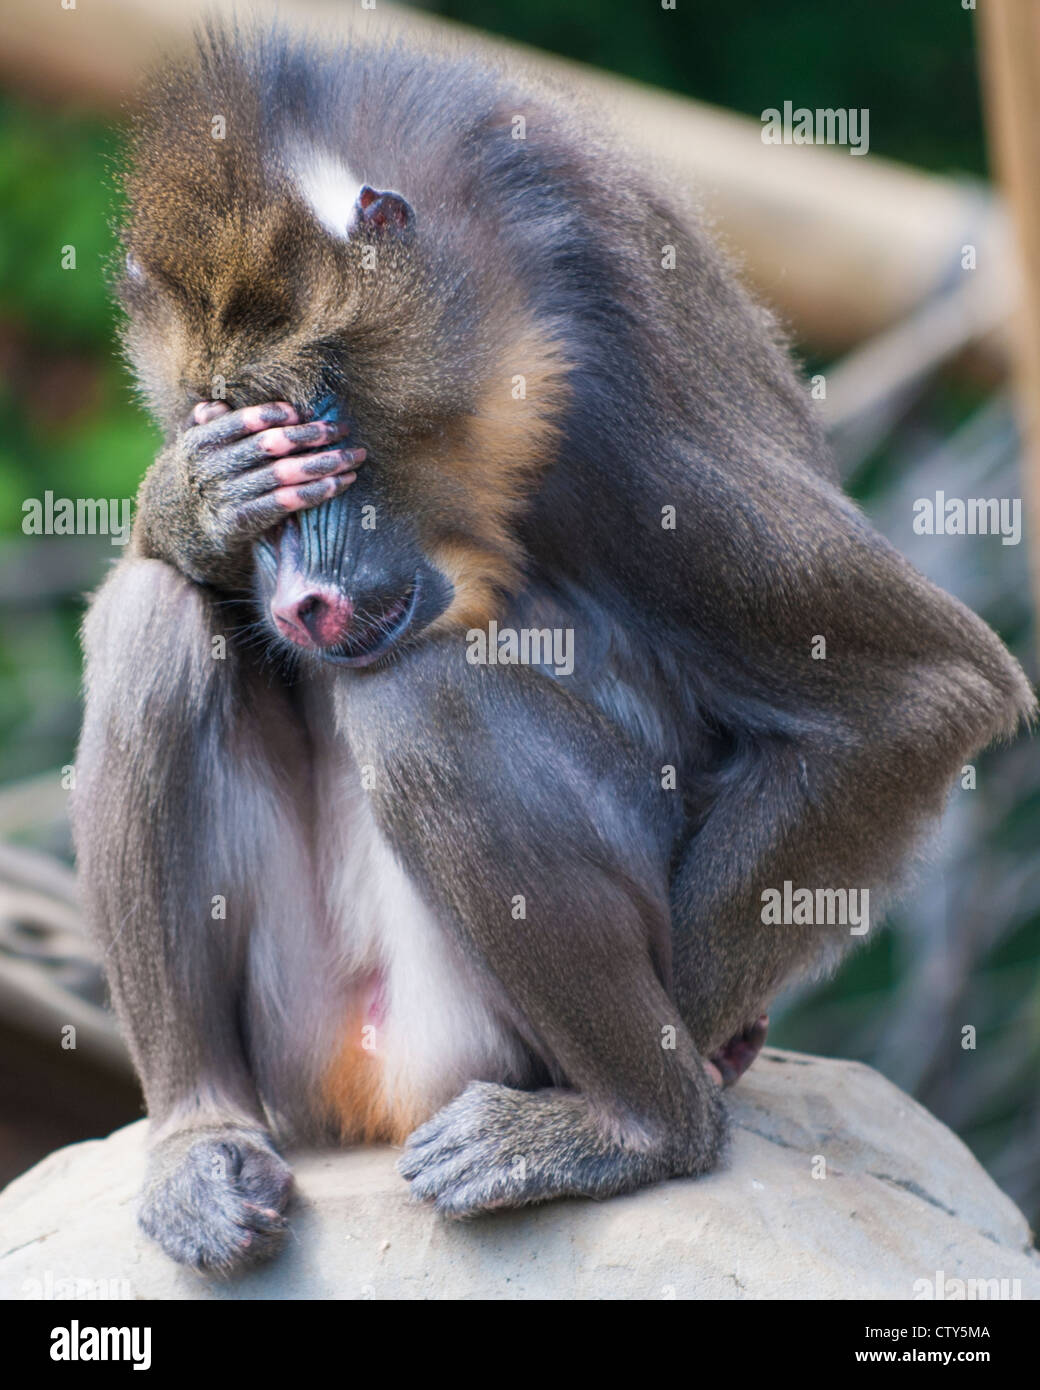 Monkey Having Bad Day Stock Photos Monkey Having Bad Day Stock